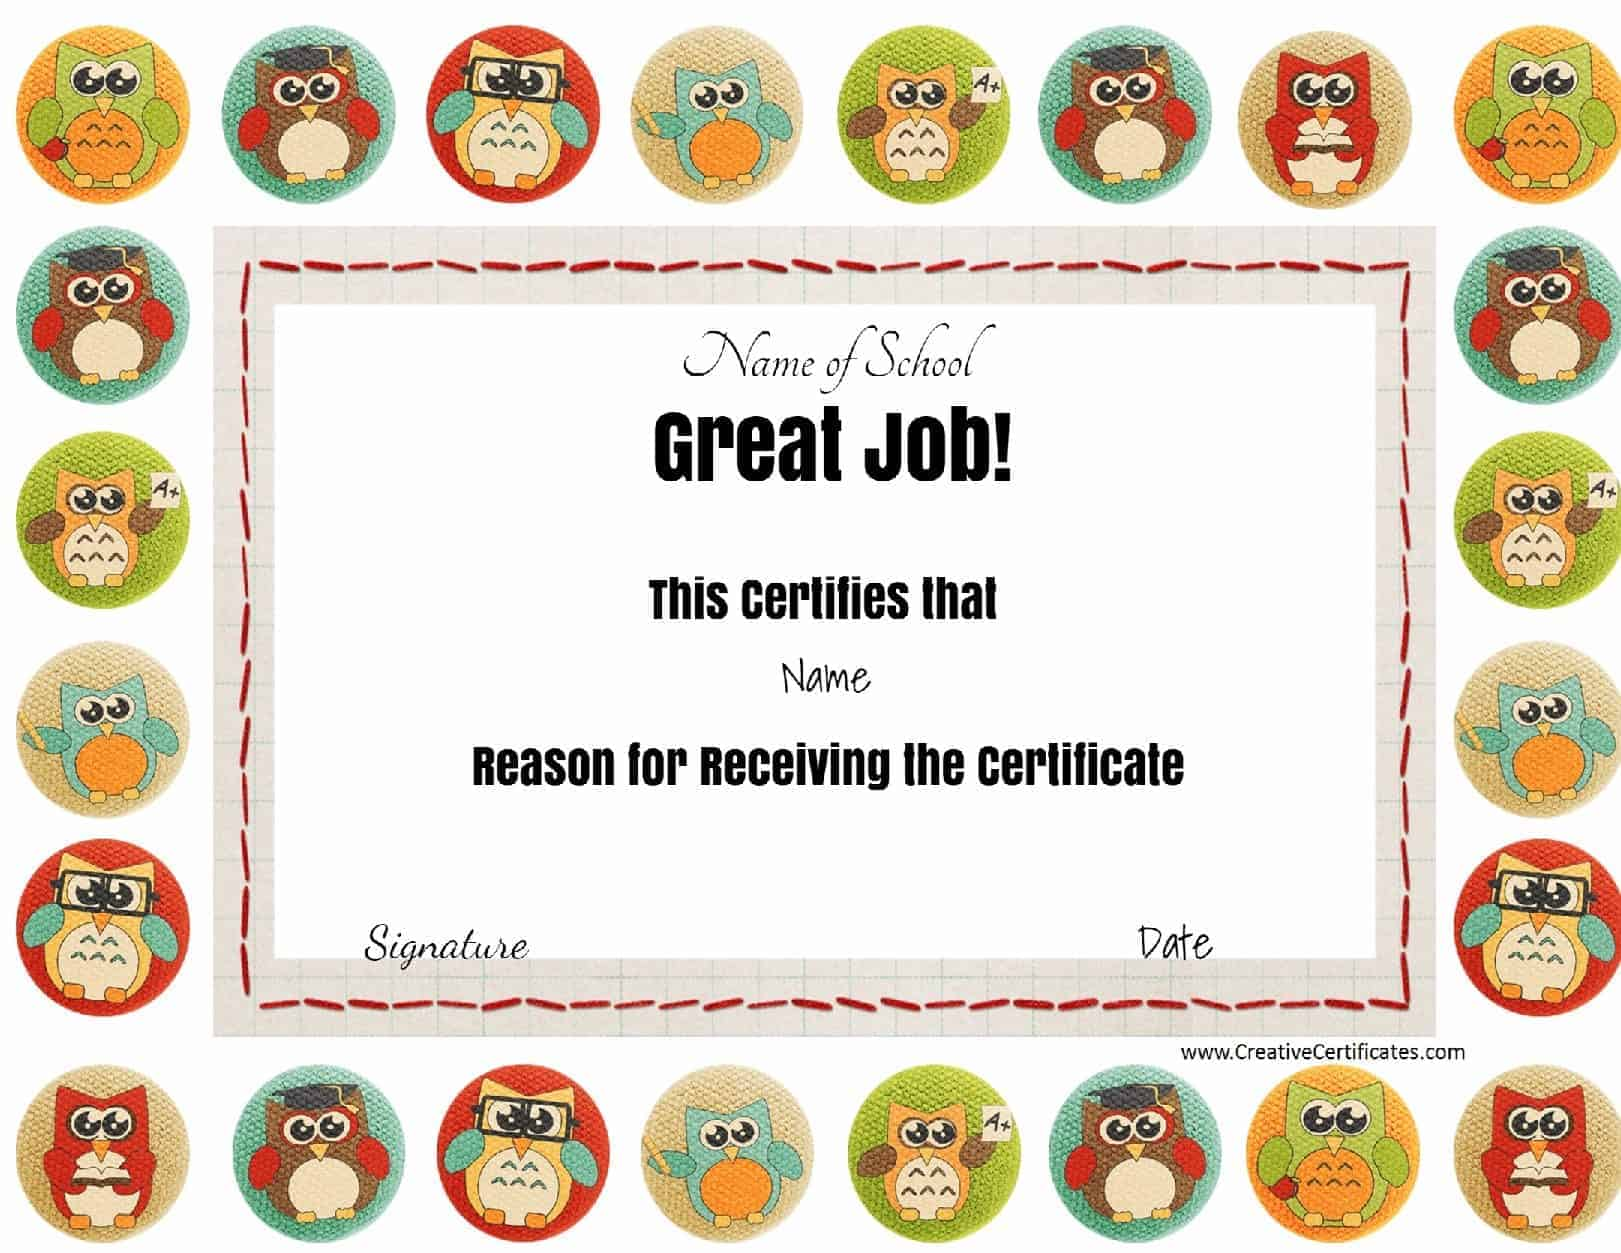 Free school certificates awards great job award with colored owls the title great job and all other 1betcityfo Images